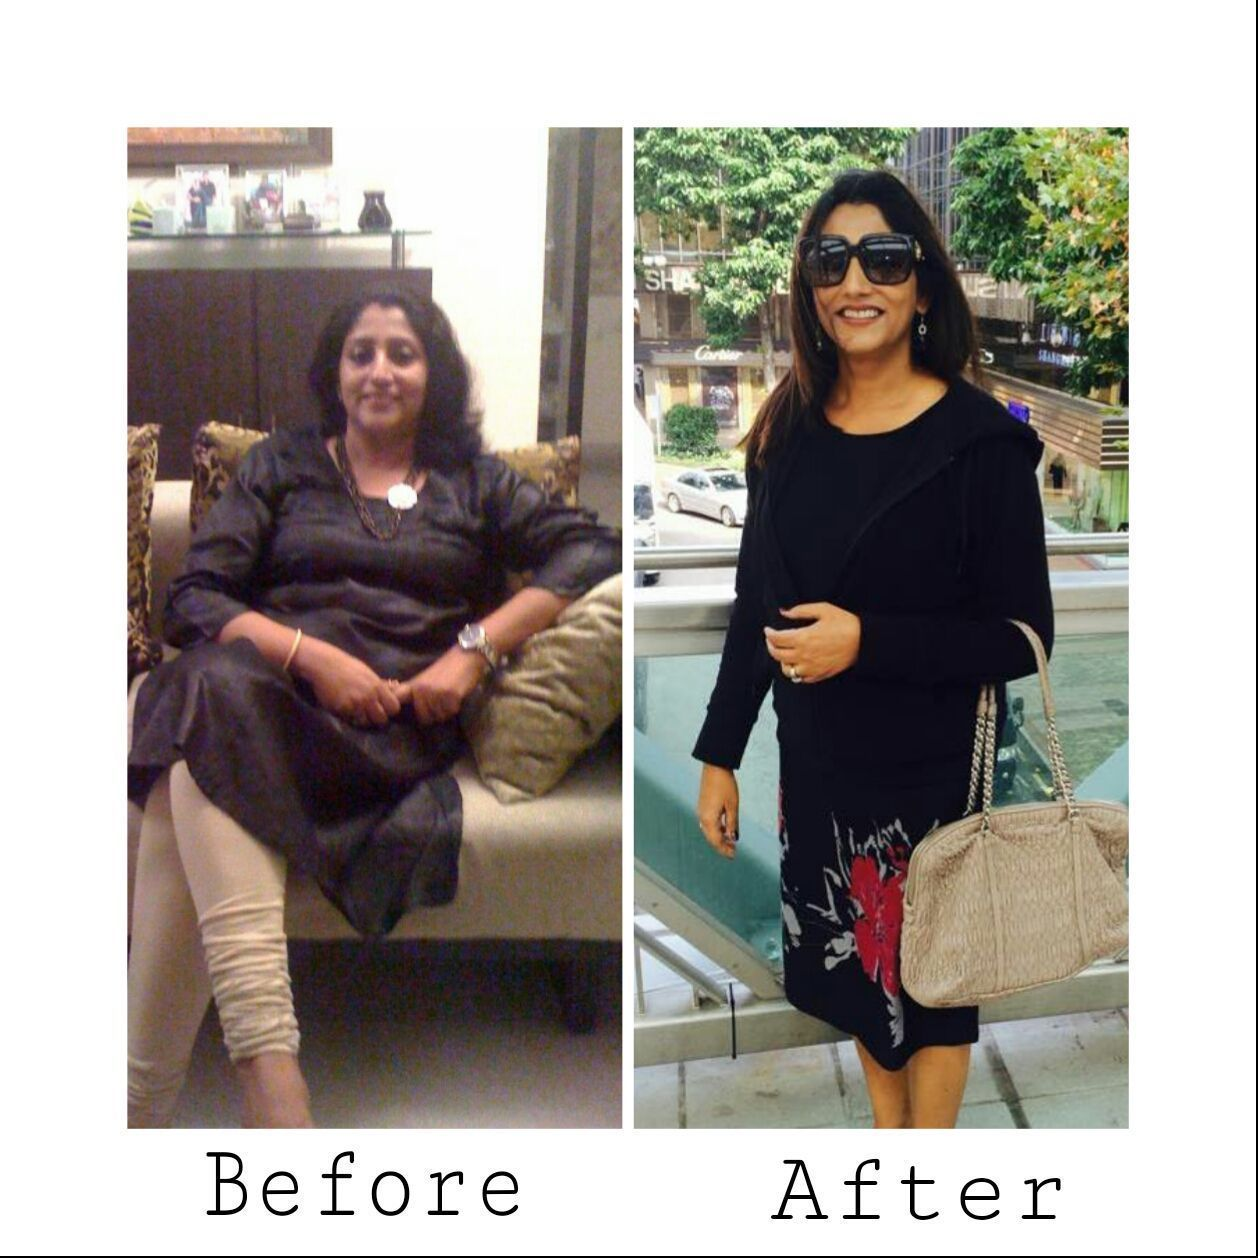 How to loss 20 kg weight in one month